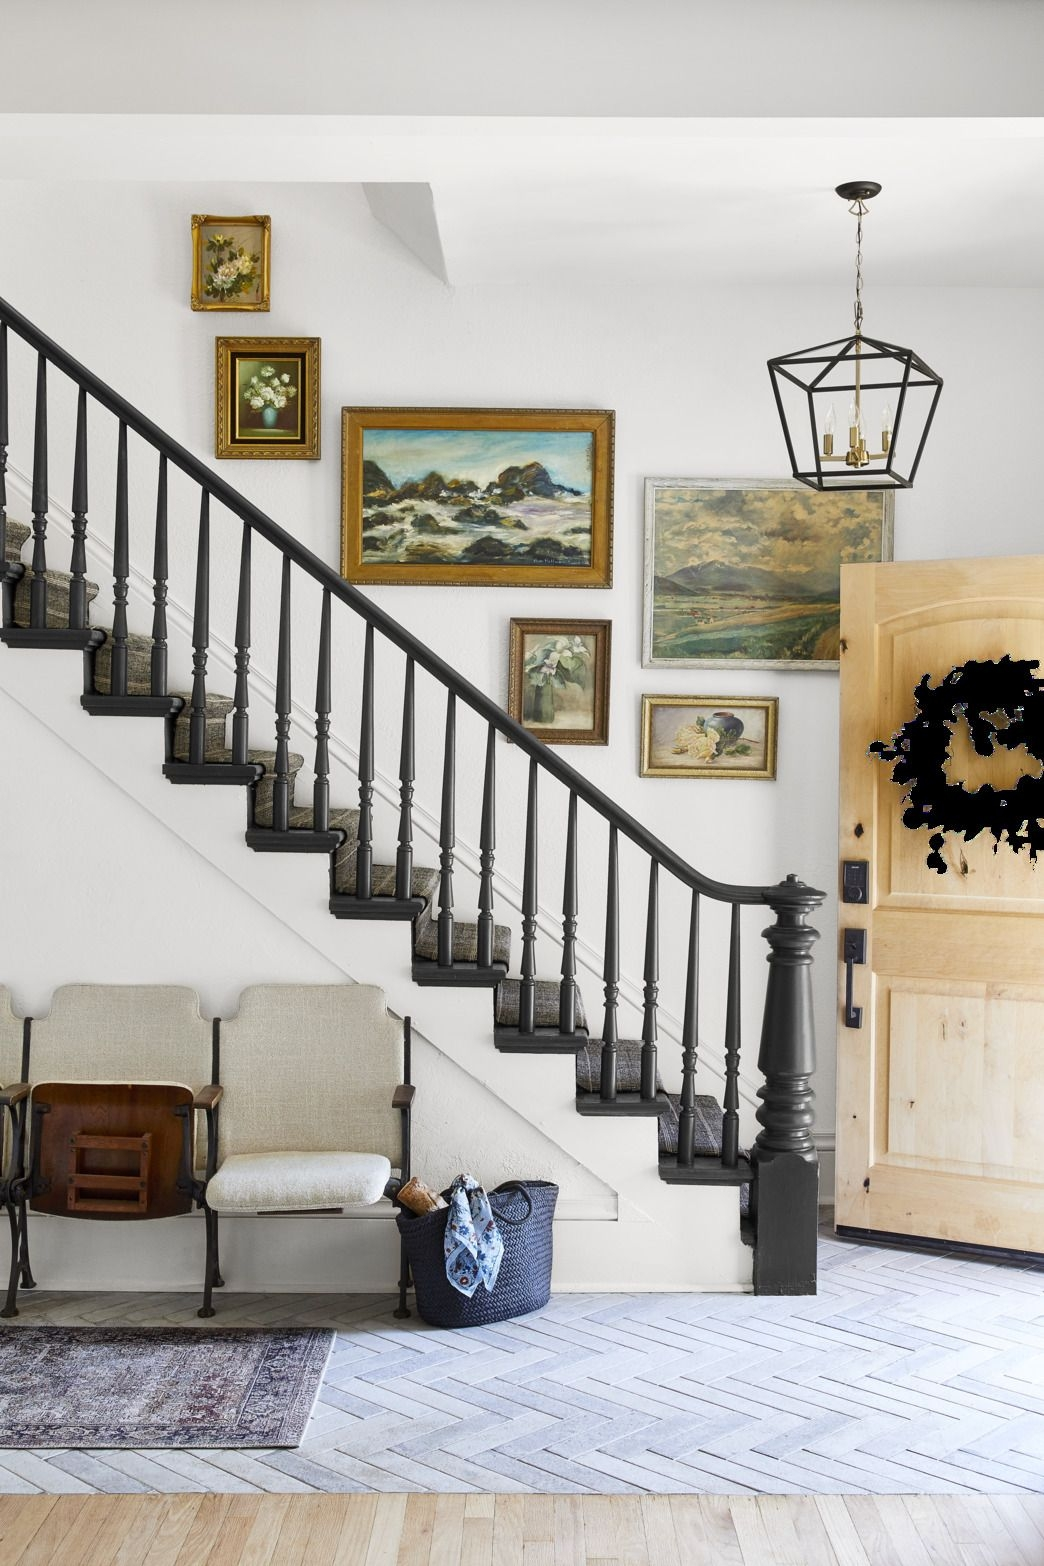 55 Best Staircase Ideas Top Ways To Decorate A Stairway | Stairs In Middle Of Room Interior Design | 3 Story Staircase | House | Middle Hallway | Private Home | Mixed Interior